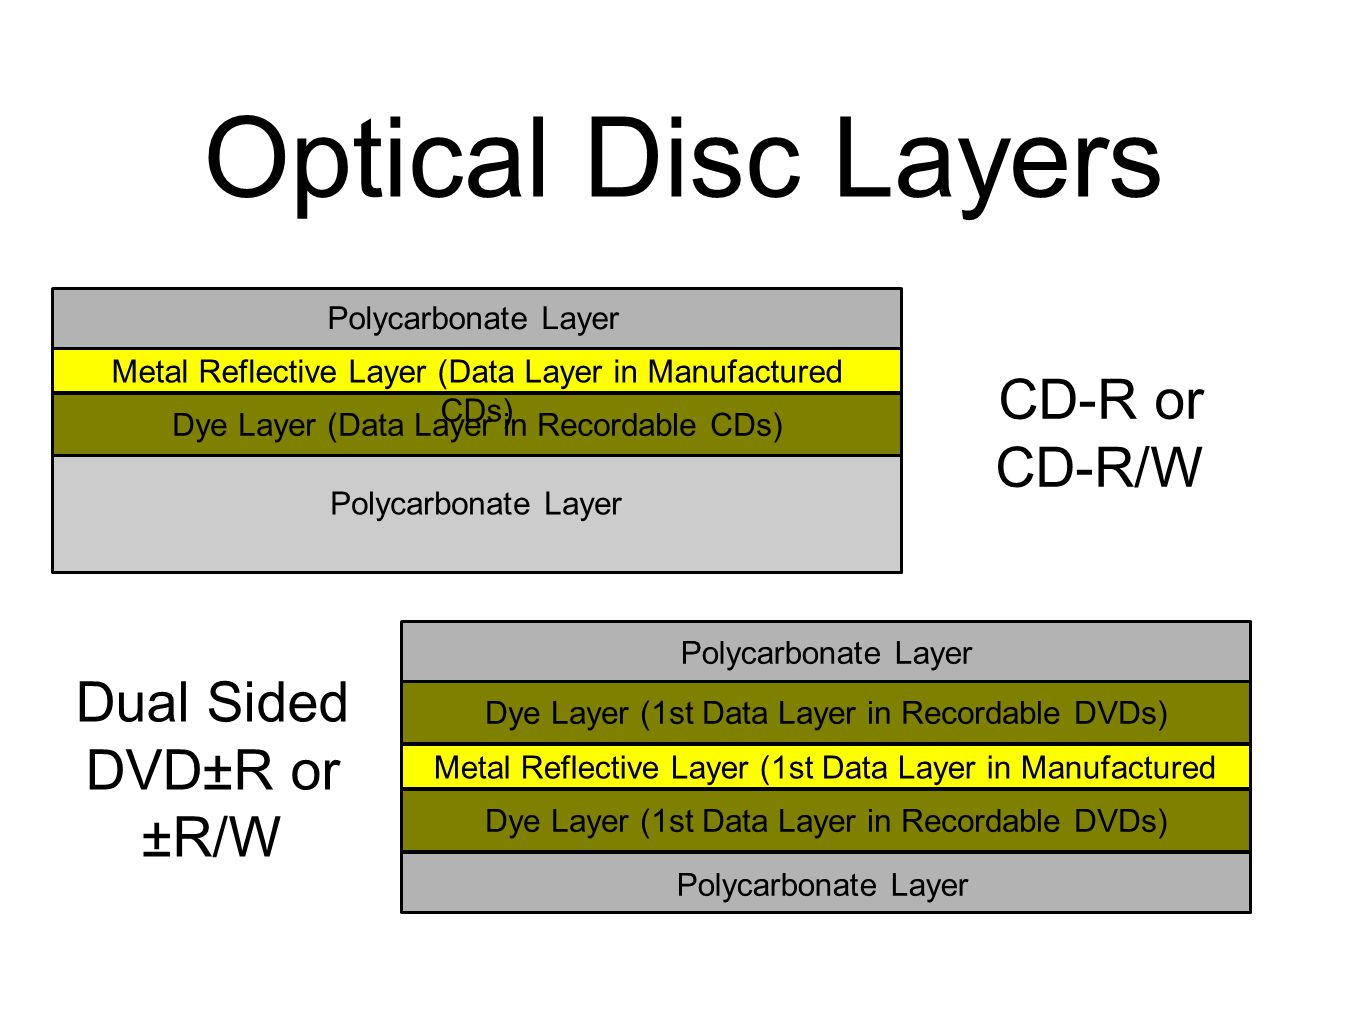 Dye Layer (1st Data Layer in Recordable DVDs) Optical Disc Layers Polycarbonate Layer Metal Reflective Layer (Data Layer in Manufactured CDs) Dye Layer (Data Layer in Recordable CDs) Polycarbonate Layer Metal Reflective Layer (1st Data Layer in Manufactured DVDs) Dye Layer (1st Data Layer in Recordable DVDs) Polycarbonate Layer CD-R or CD-R/W Dual Sided DVD±R or ±R/W